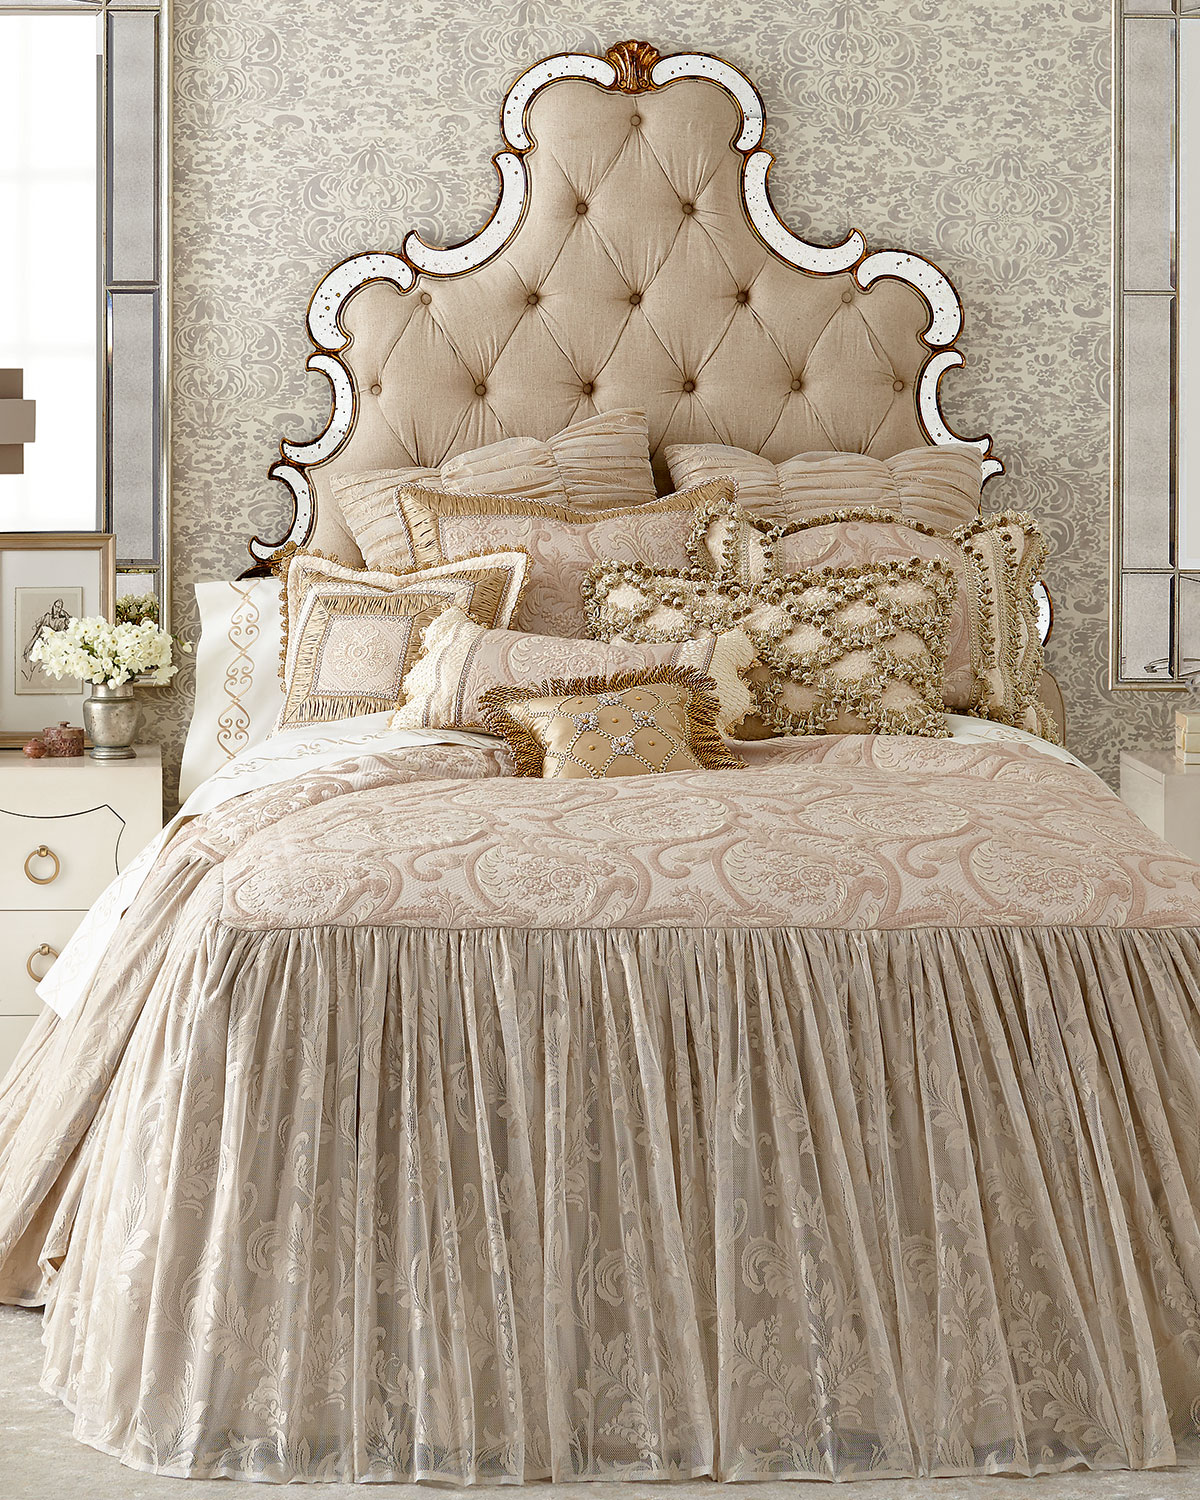 Kensington Garden Gathered Lace European Sham